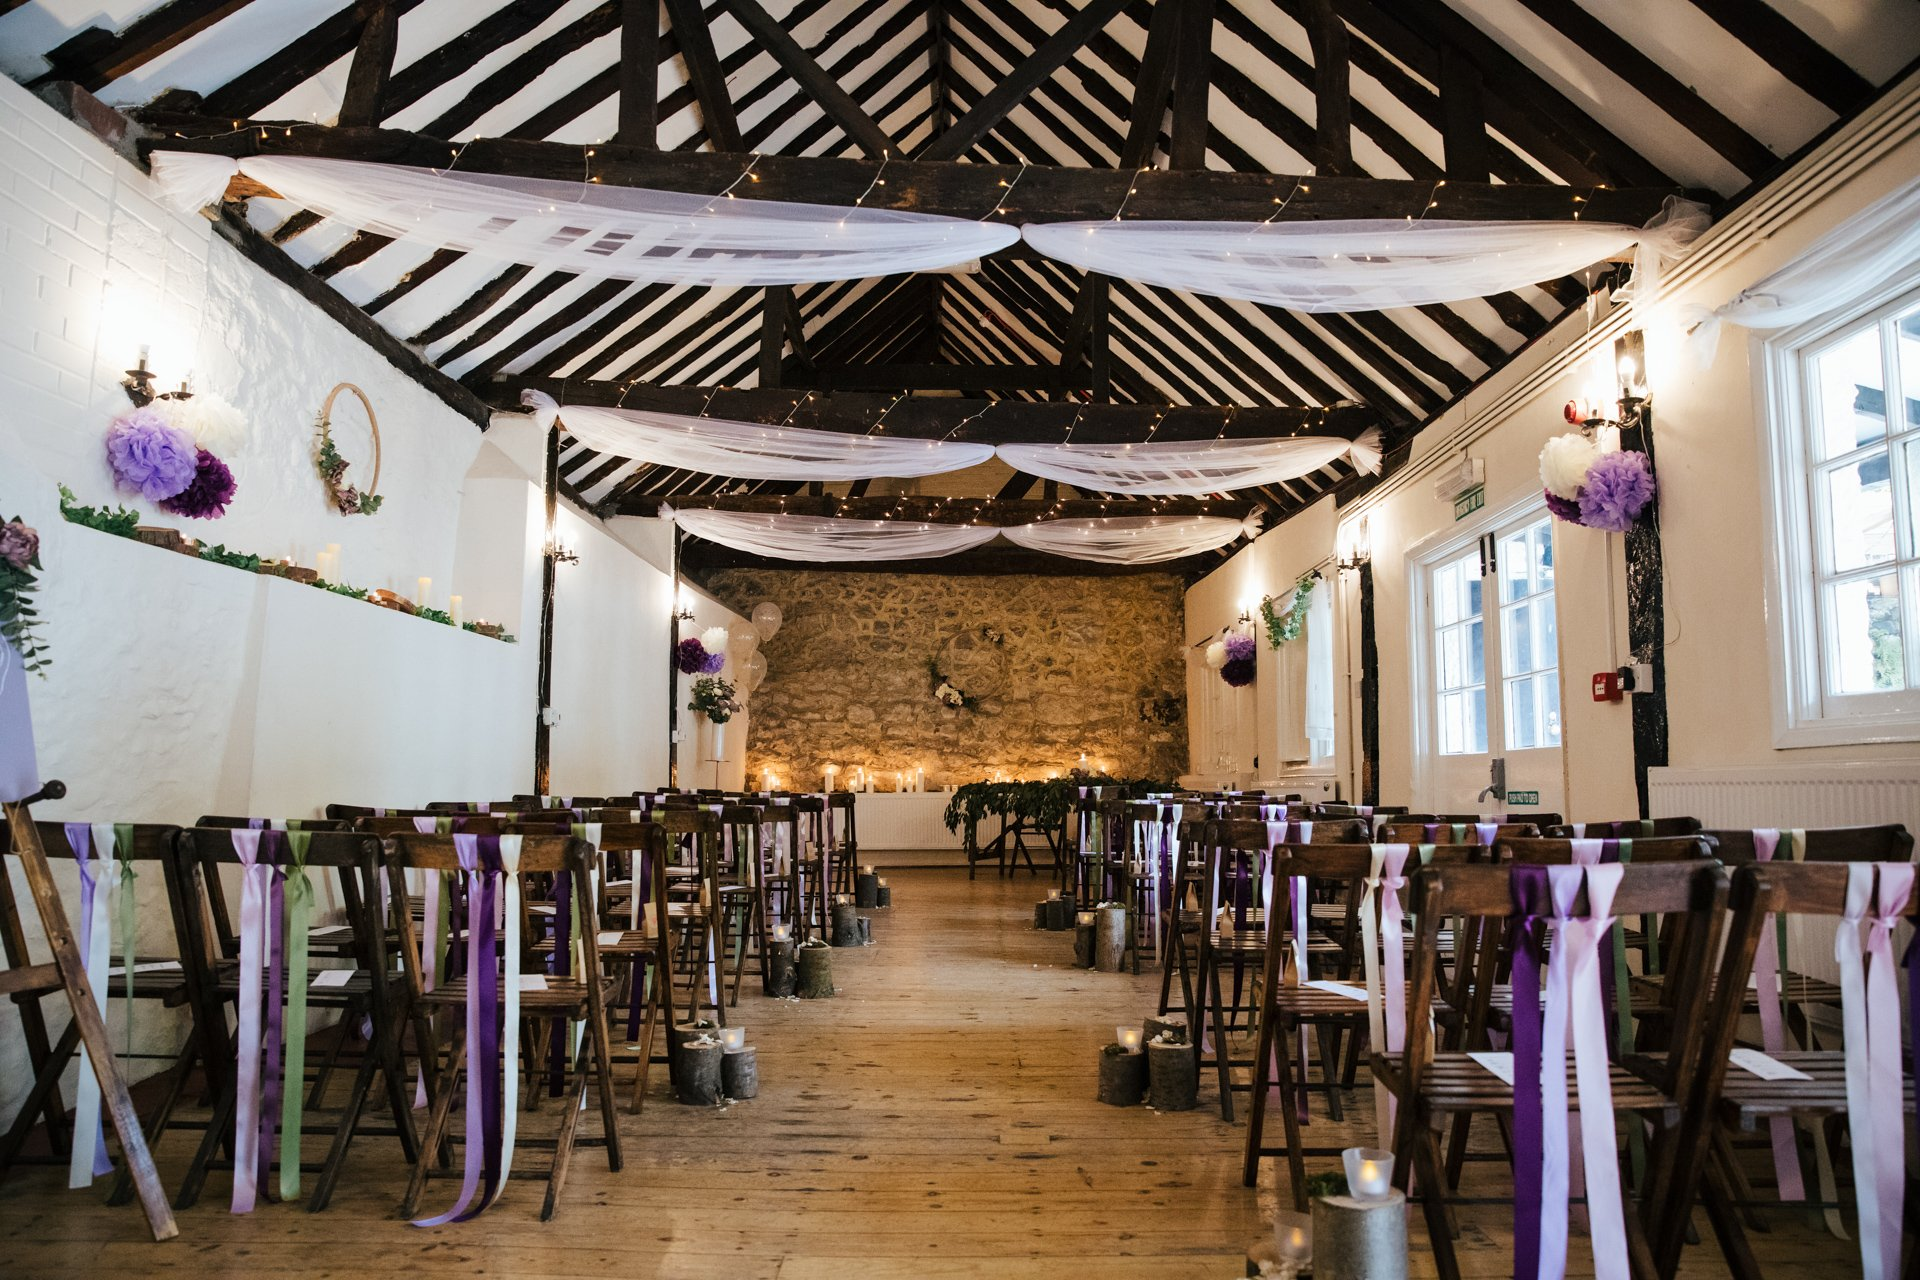 The interior of the Buttery, The Bull Hotel's ceremony room, decorated for a rustic wedding